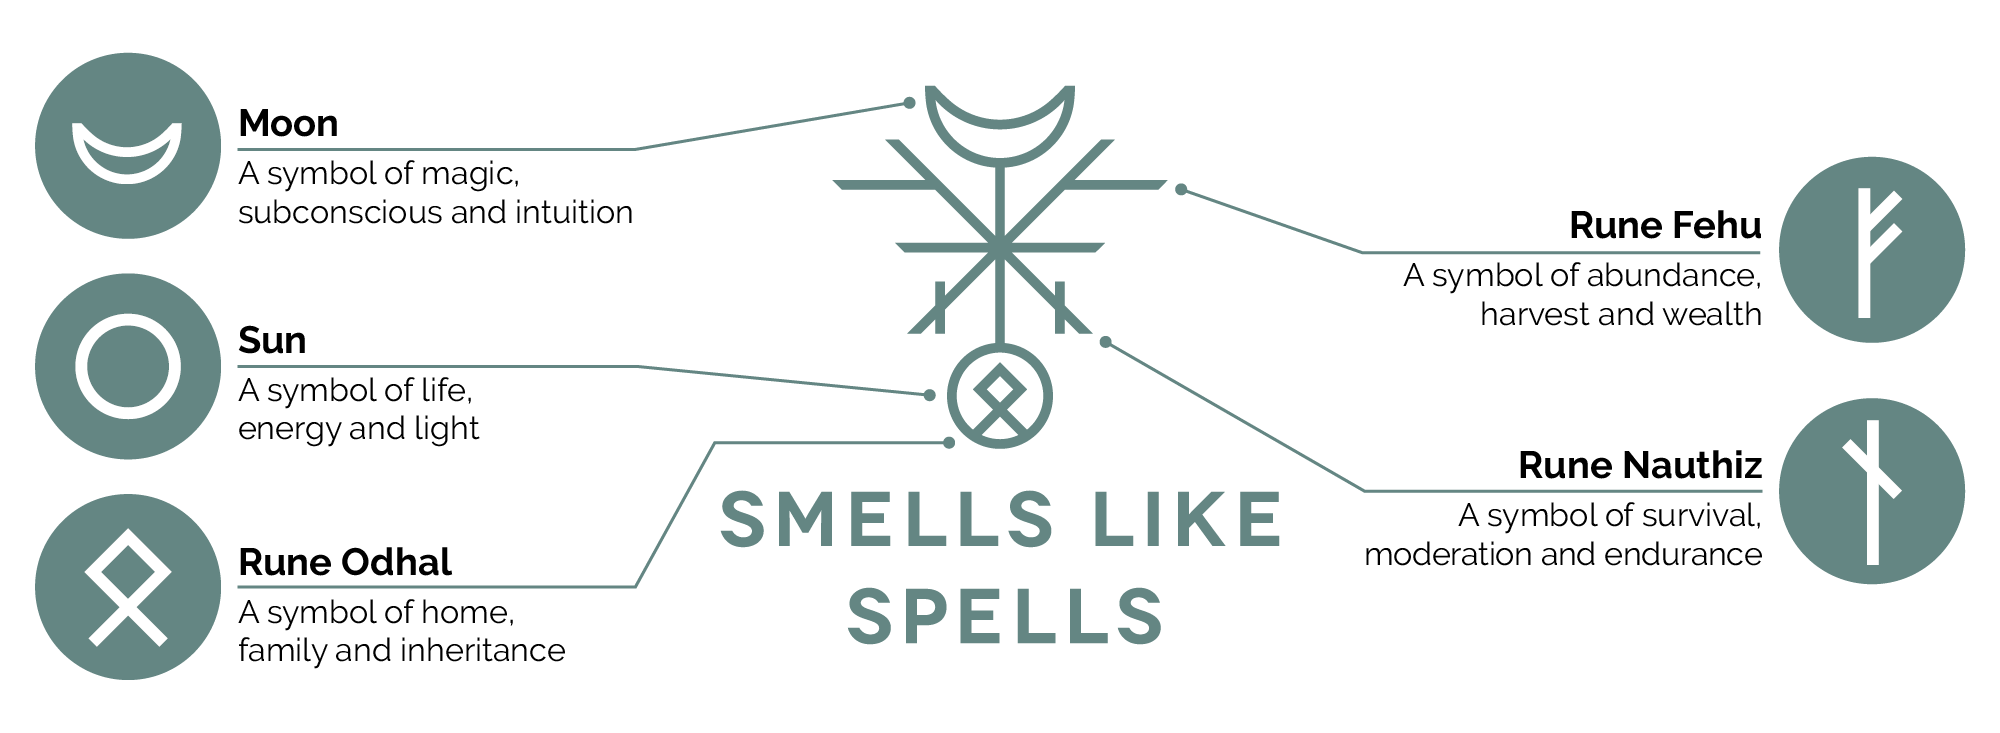 THE SECRET OF SMELLS LIKE SPELLS SIGN